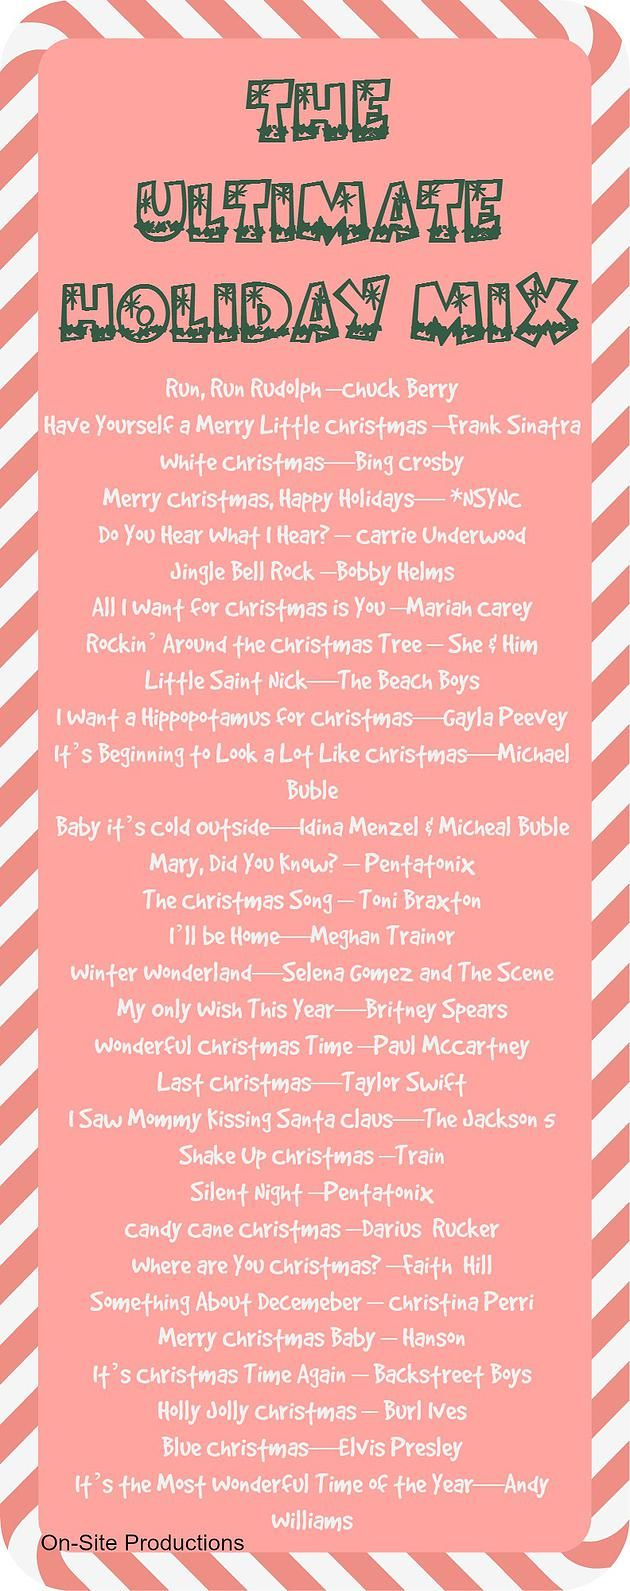 I love this mix! The Ultimate Holiday Mix is perfect for